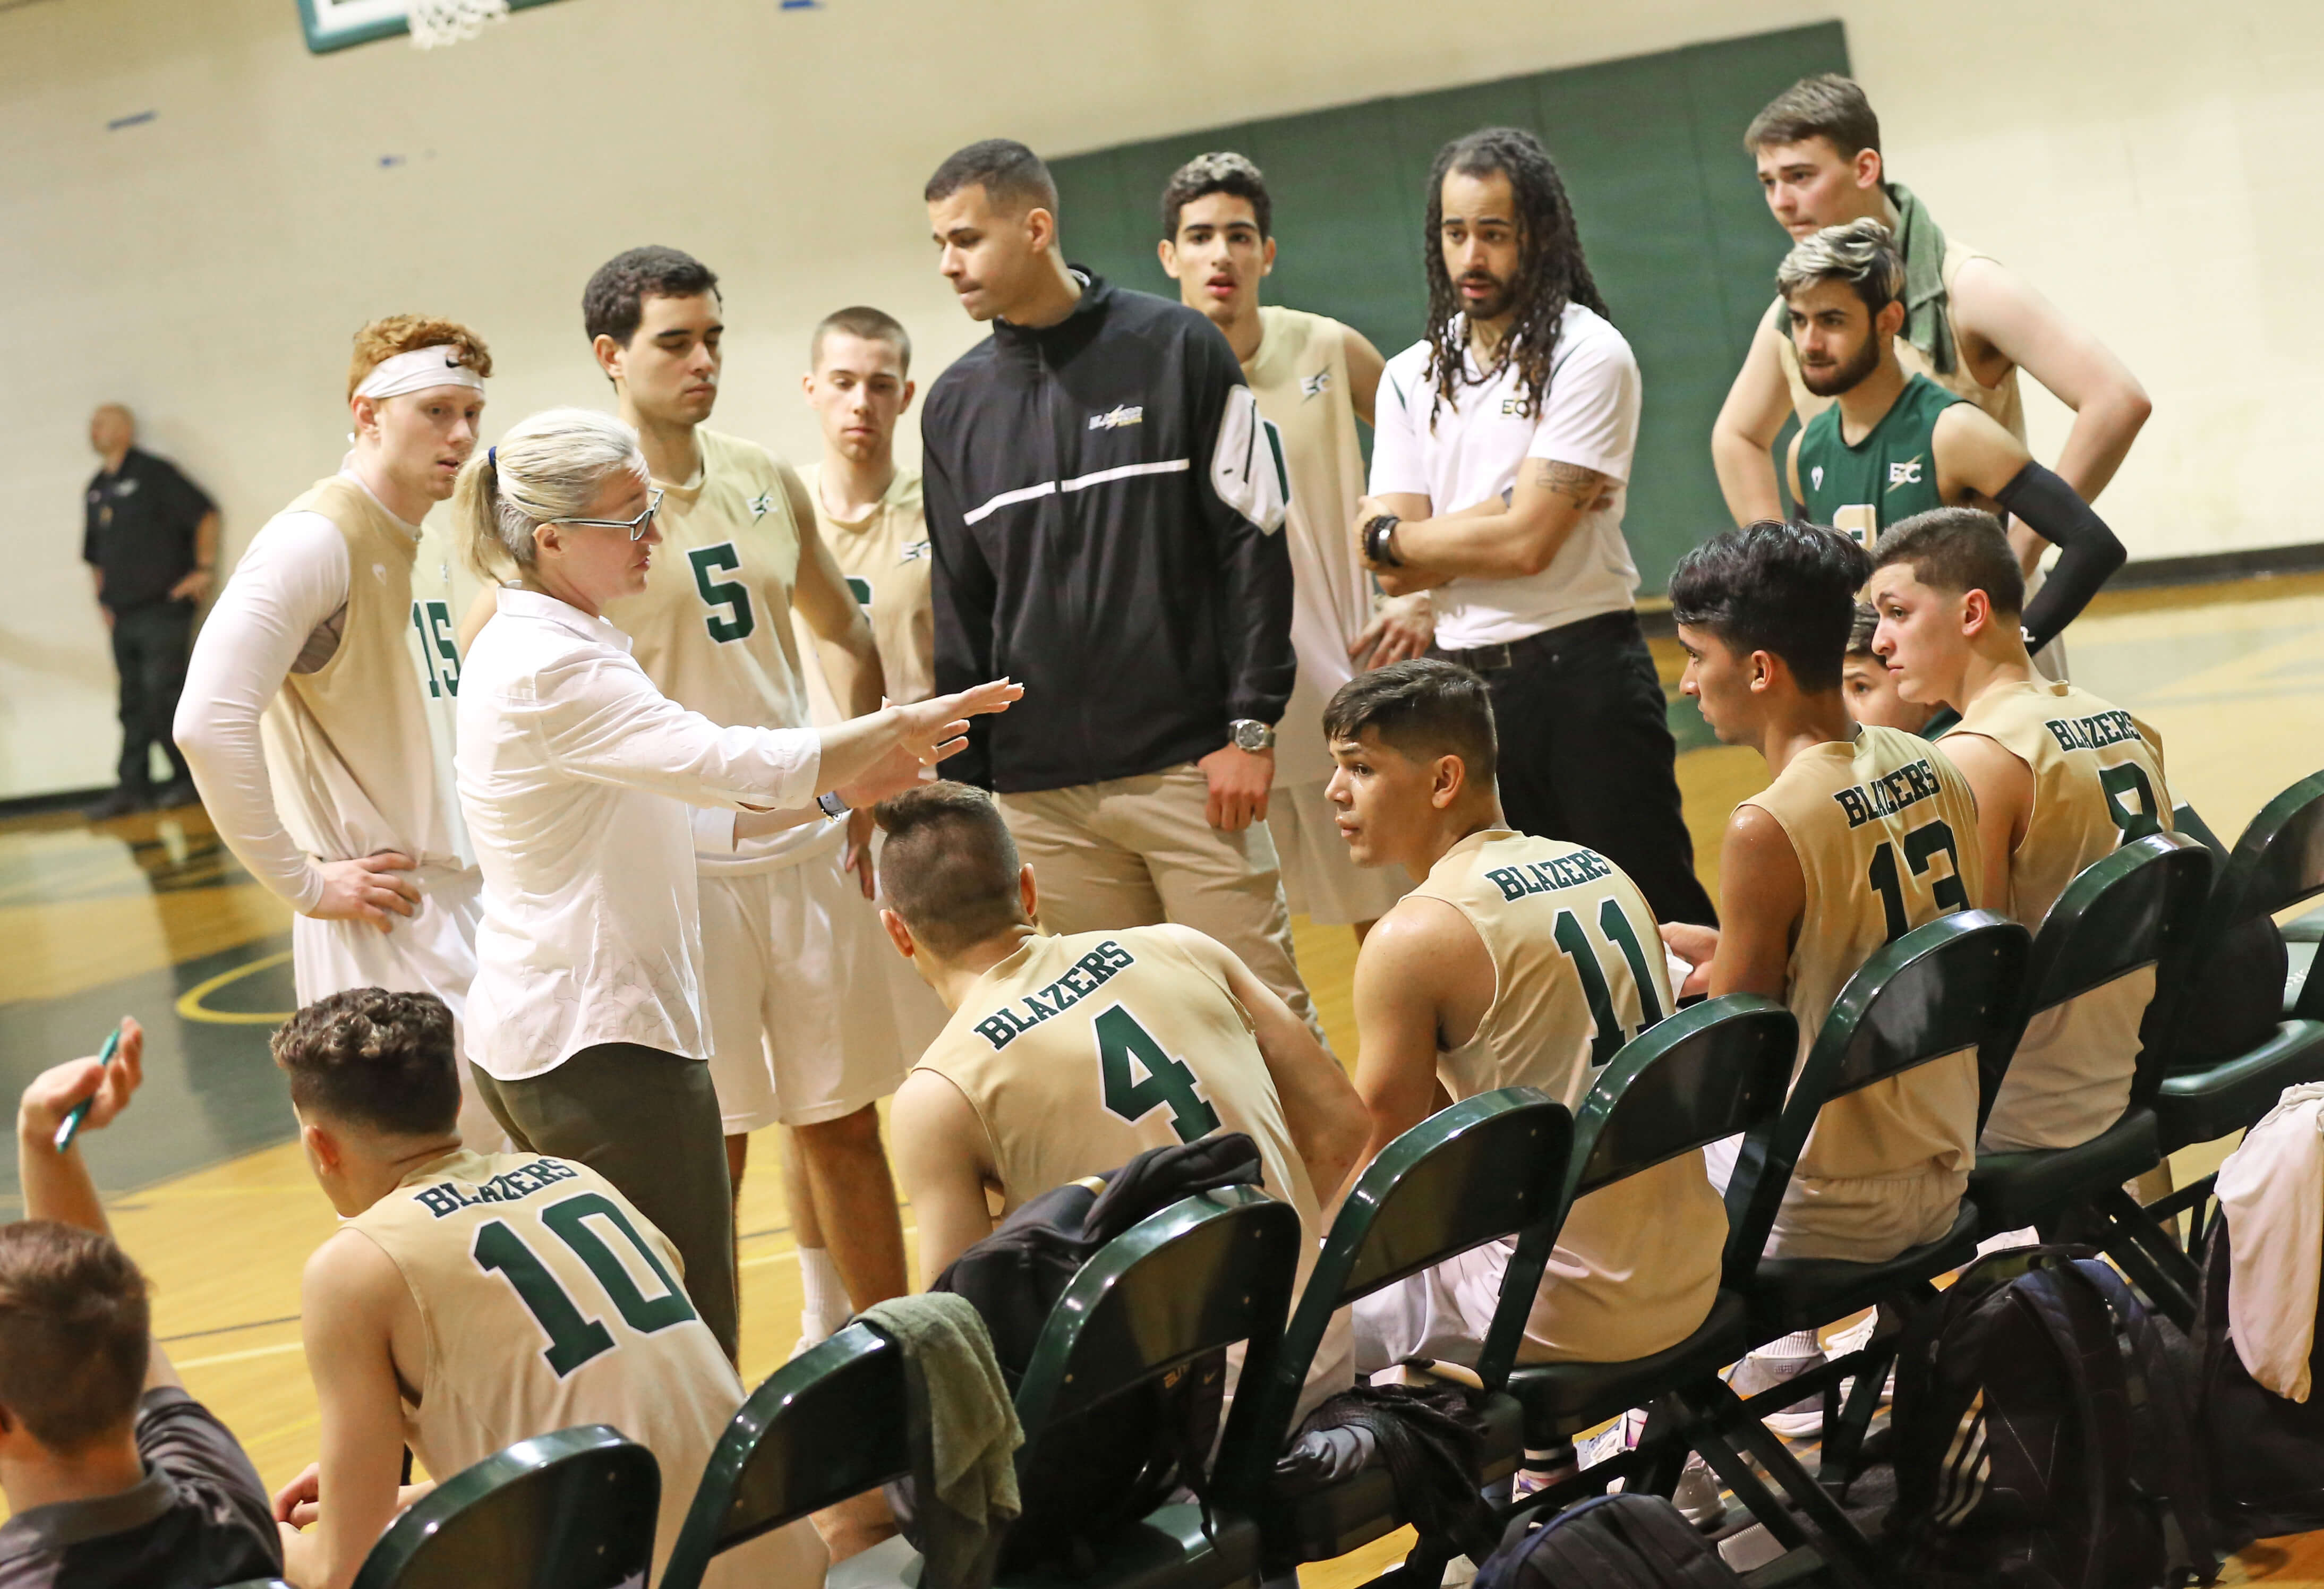 Photo of the Elms men's volleyball team - coaching concept photo